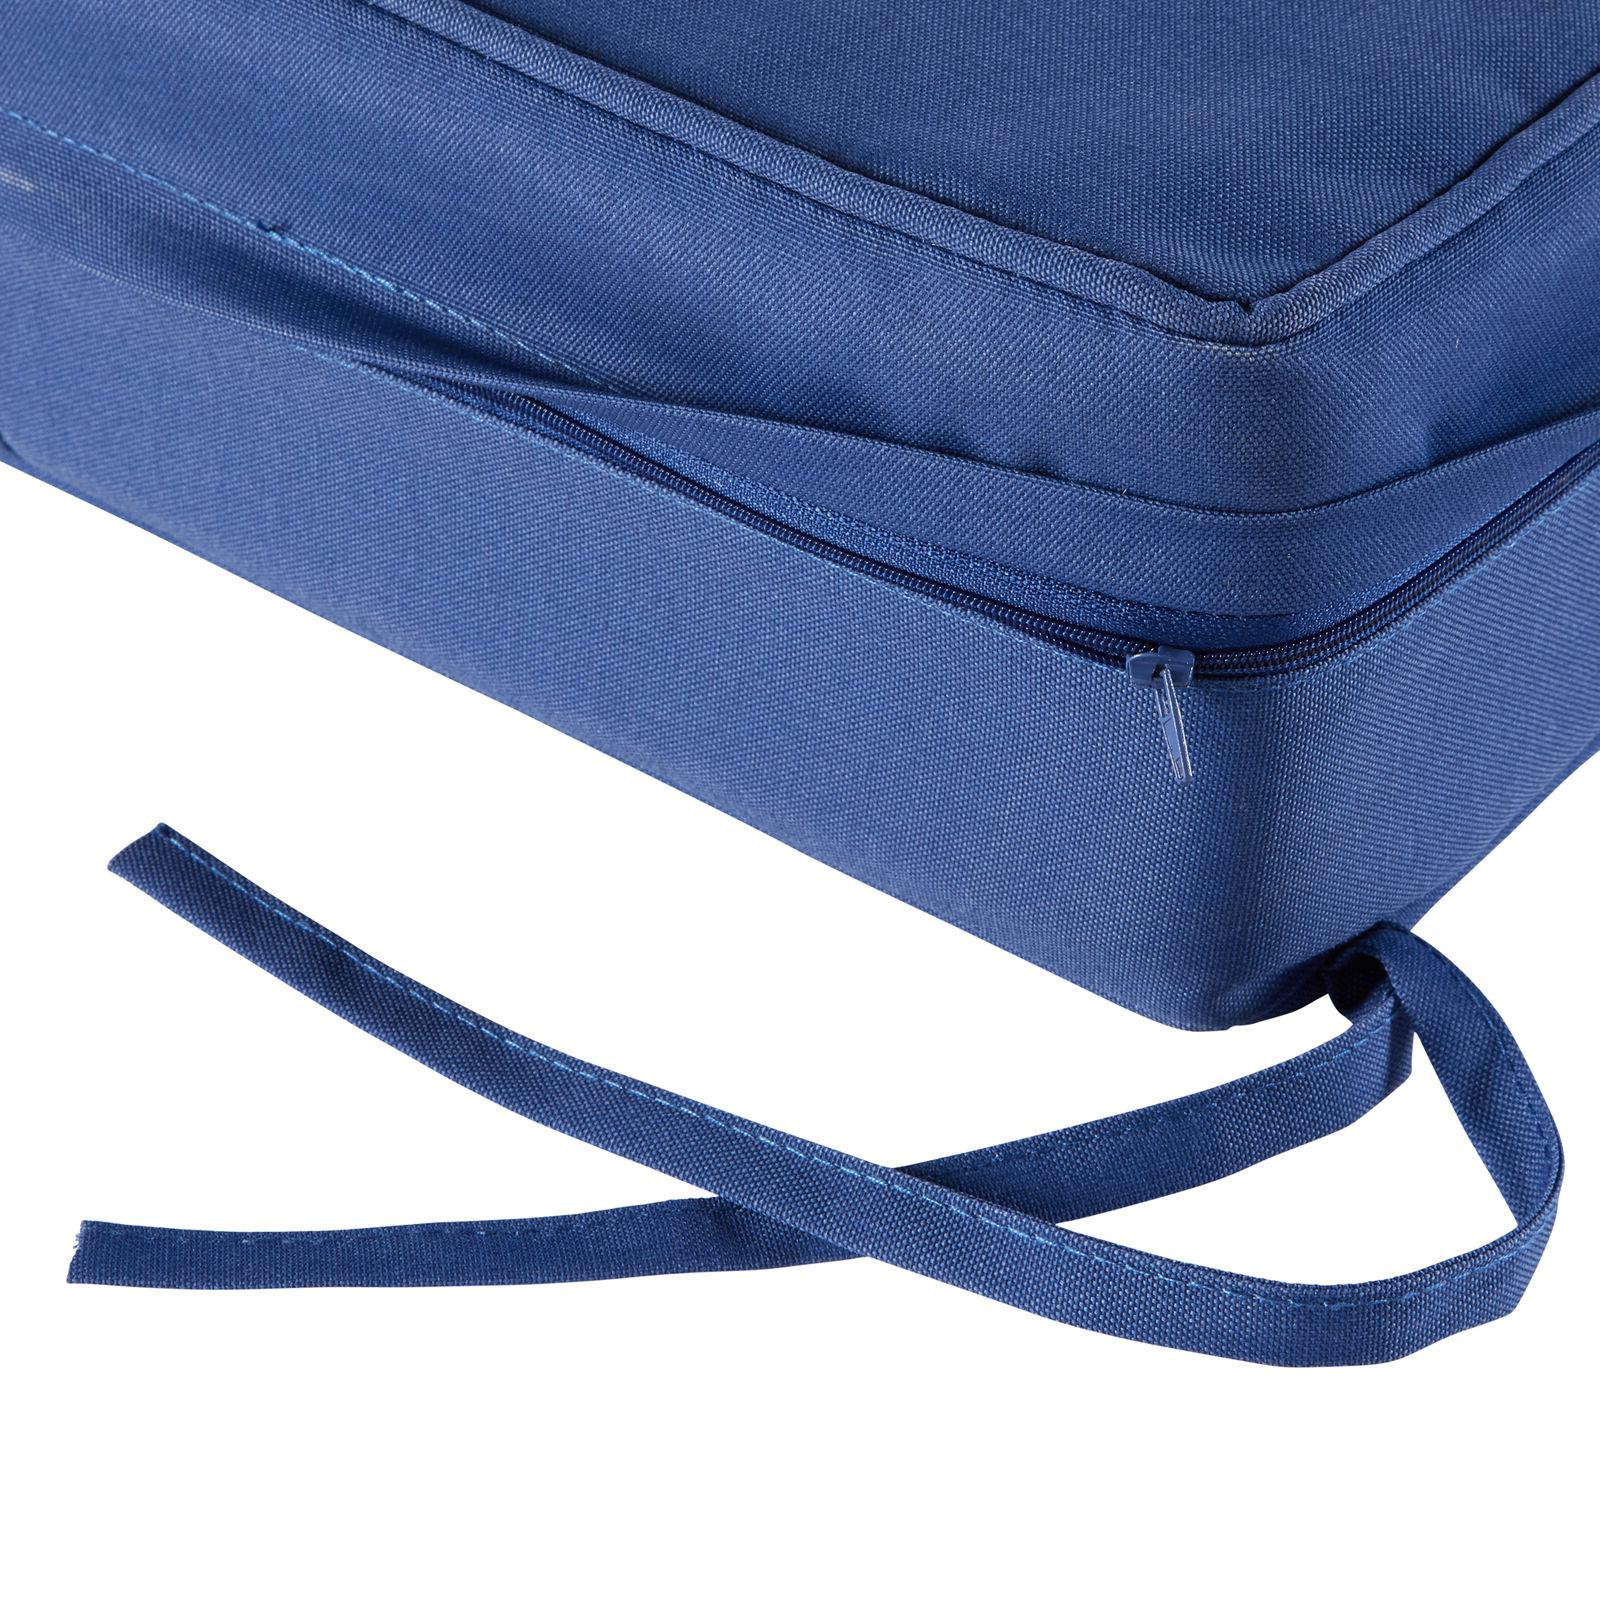 Greendale Home Solid Seat Cushion Set NEW